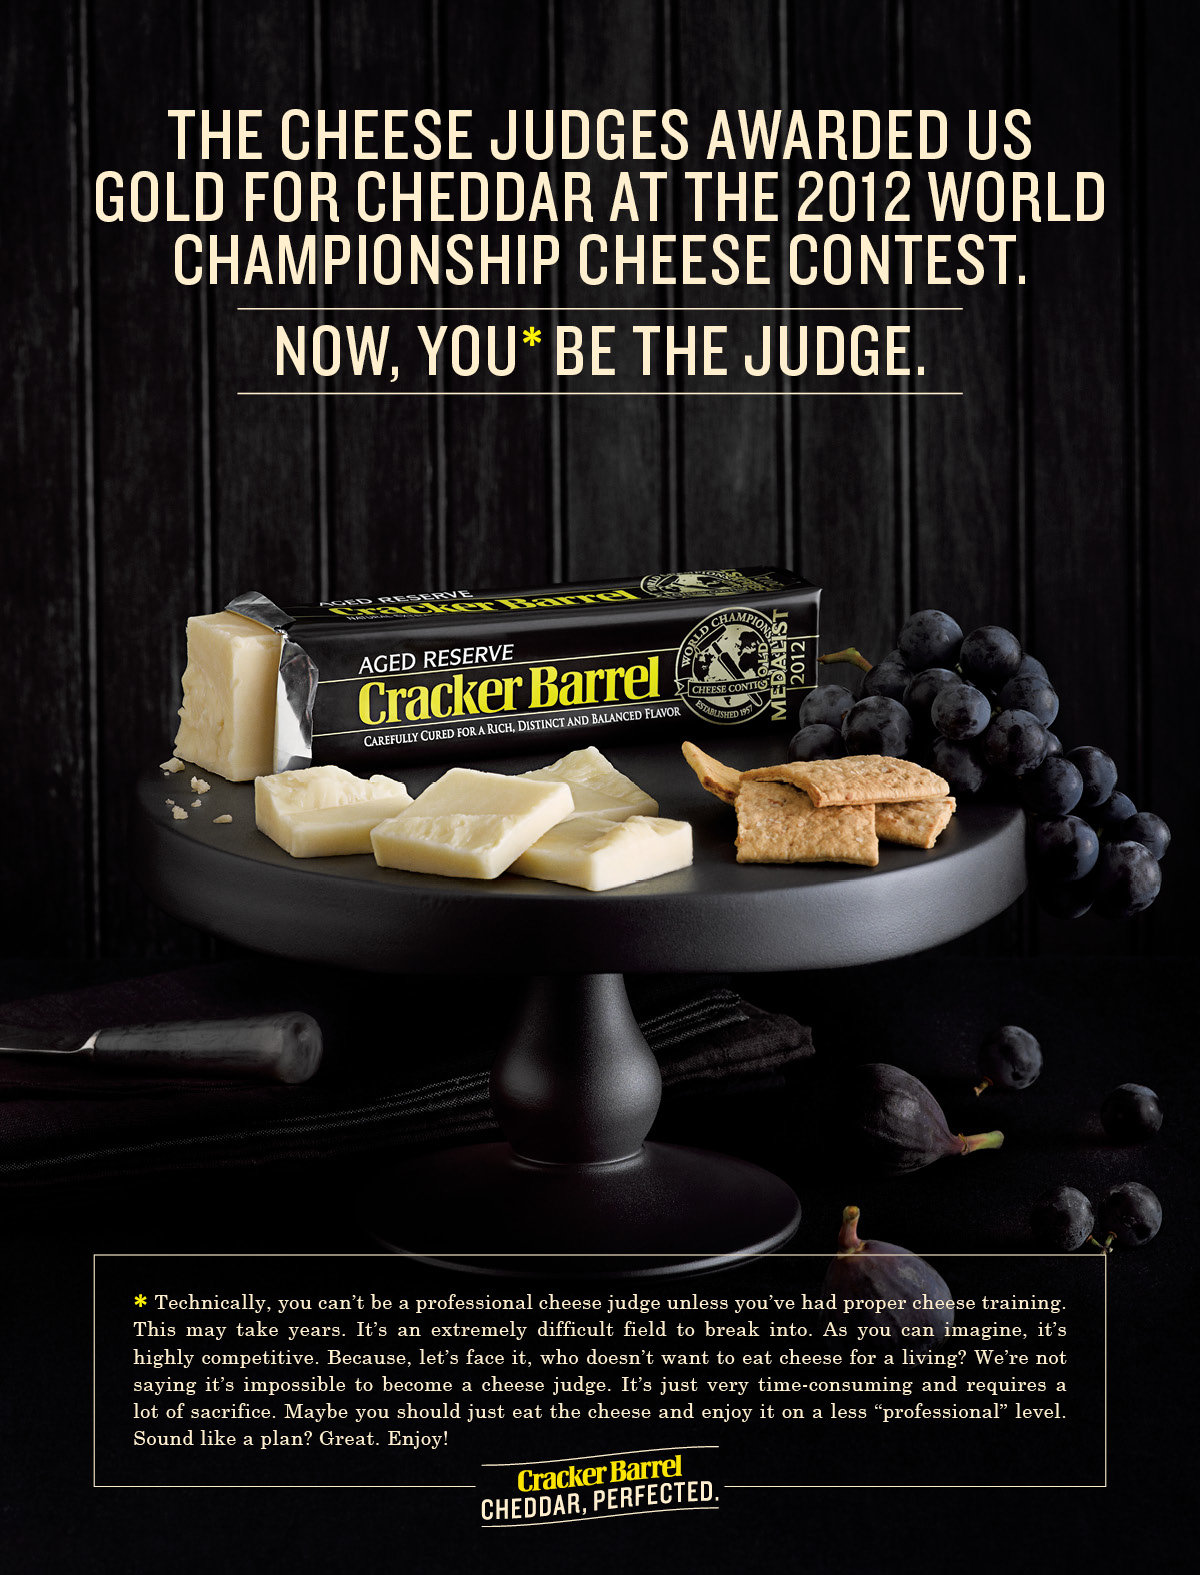 """Cracker Barrel Cheese Launches """"Cheddar, Perfected ..."""